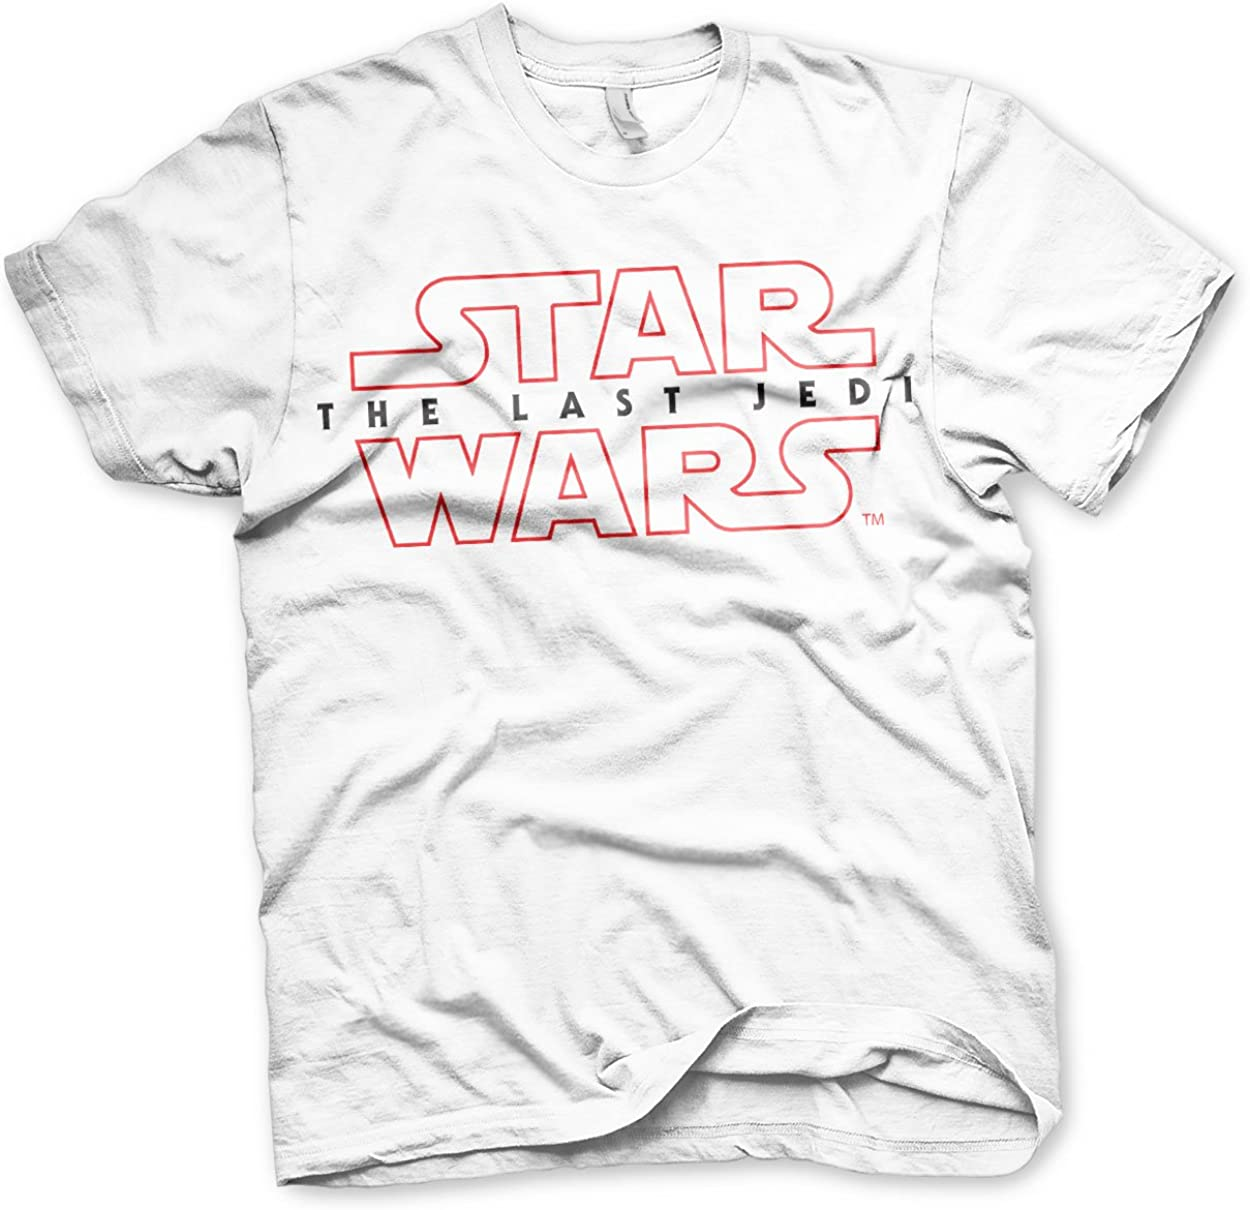 4XL Officially Licensed Star Wars 5XL Men T-Shirt The Last Jedi Troopers 3XL